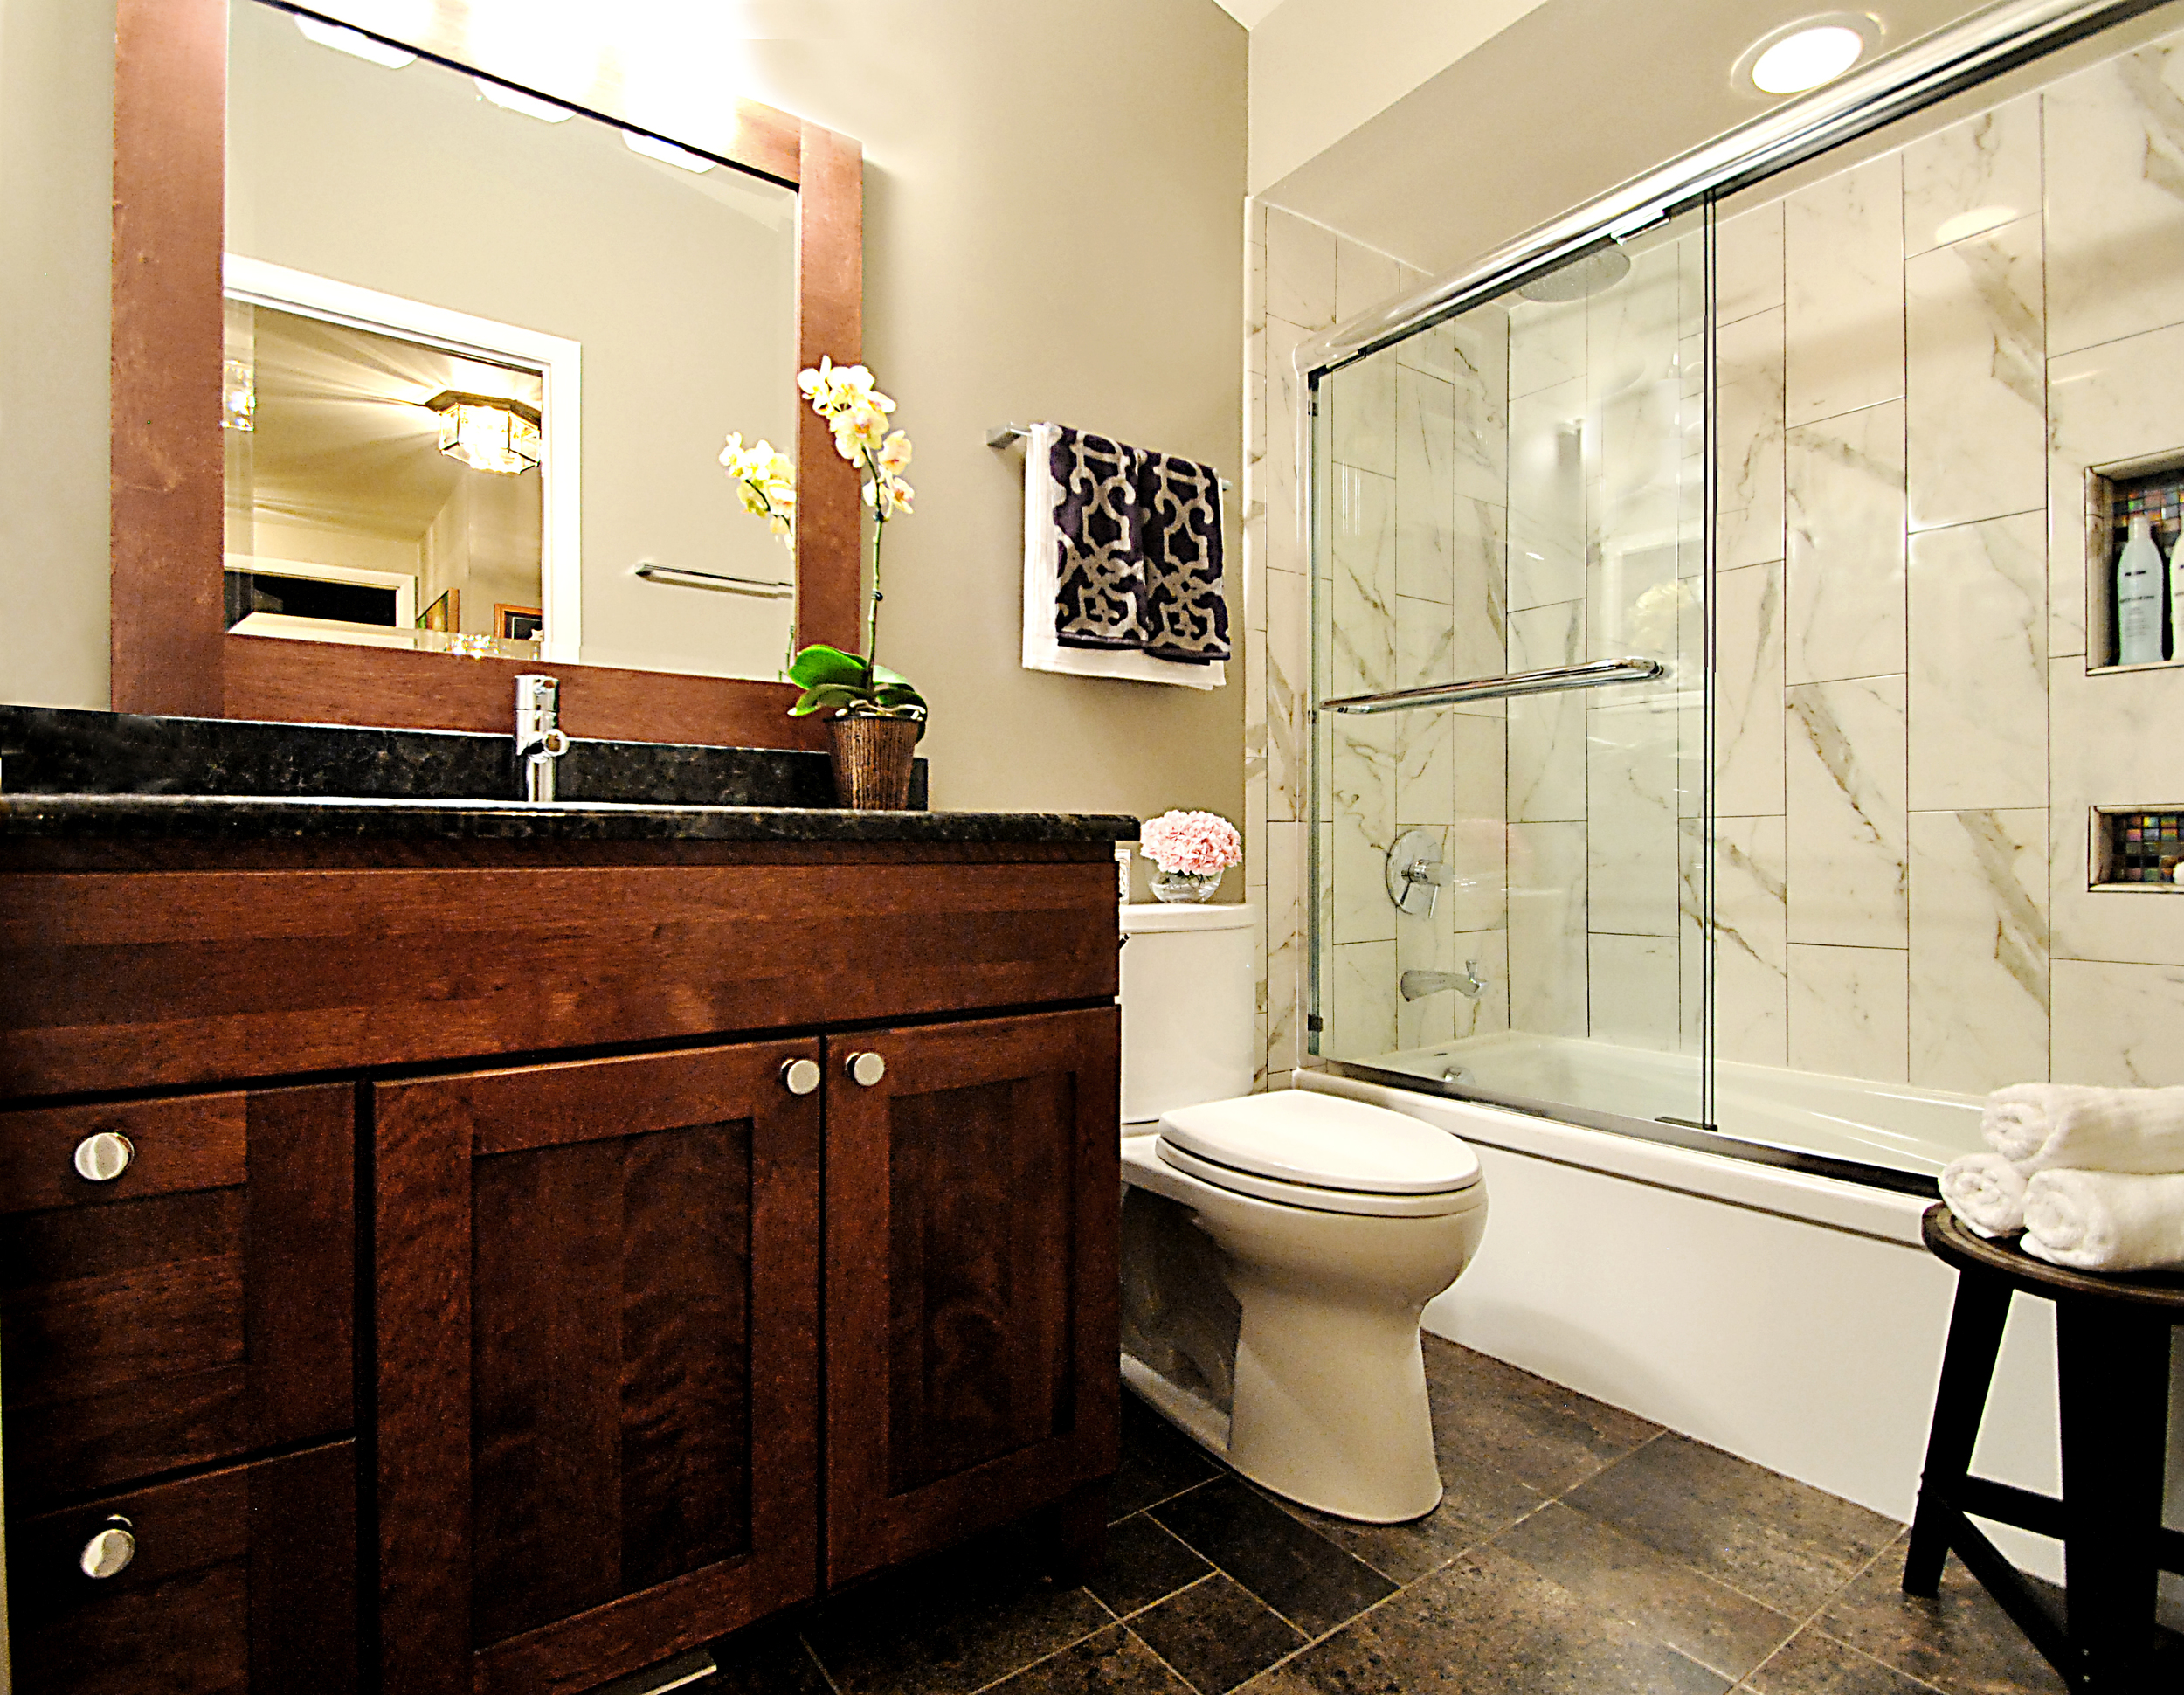 2 chicago bath renovation atelier bea brooke henton copy.jpg